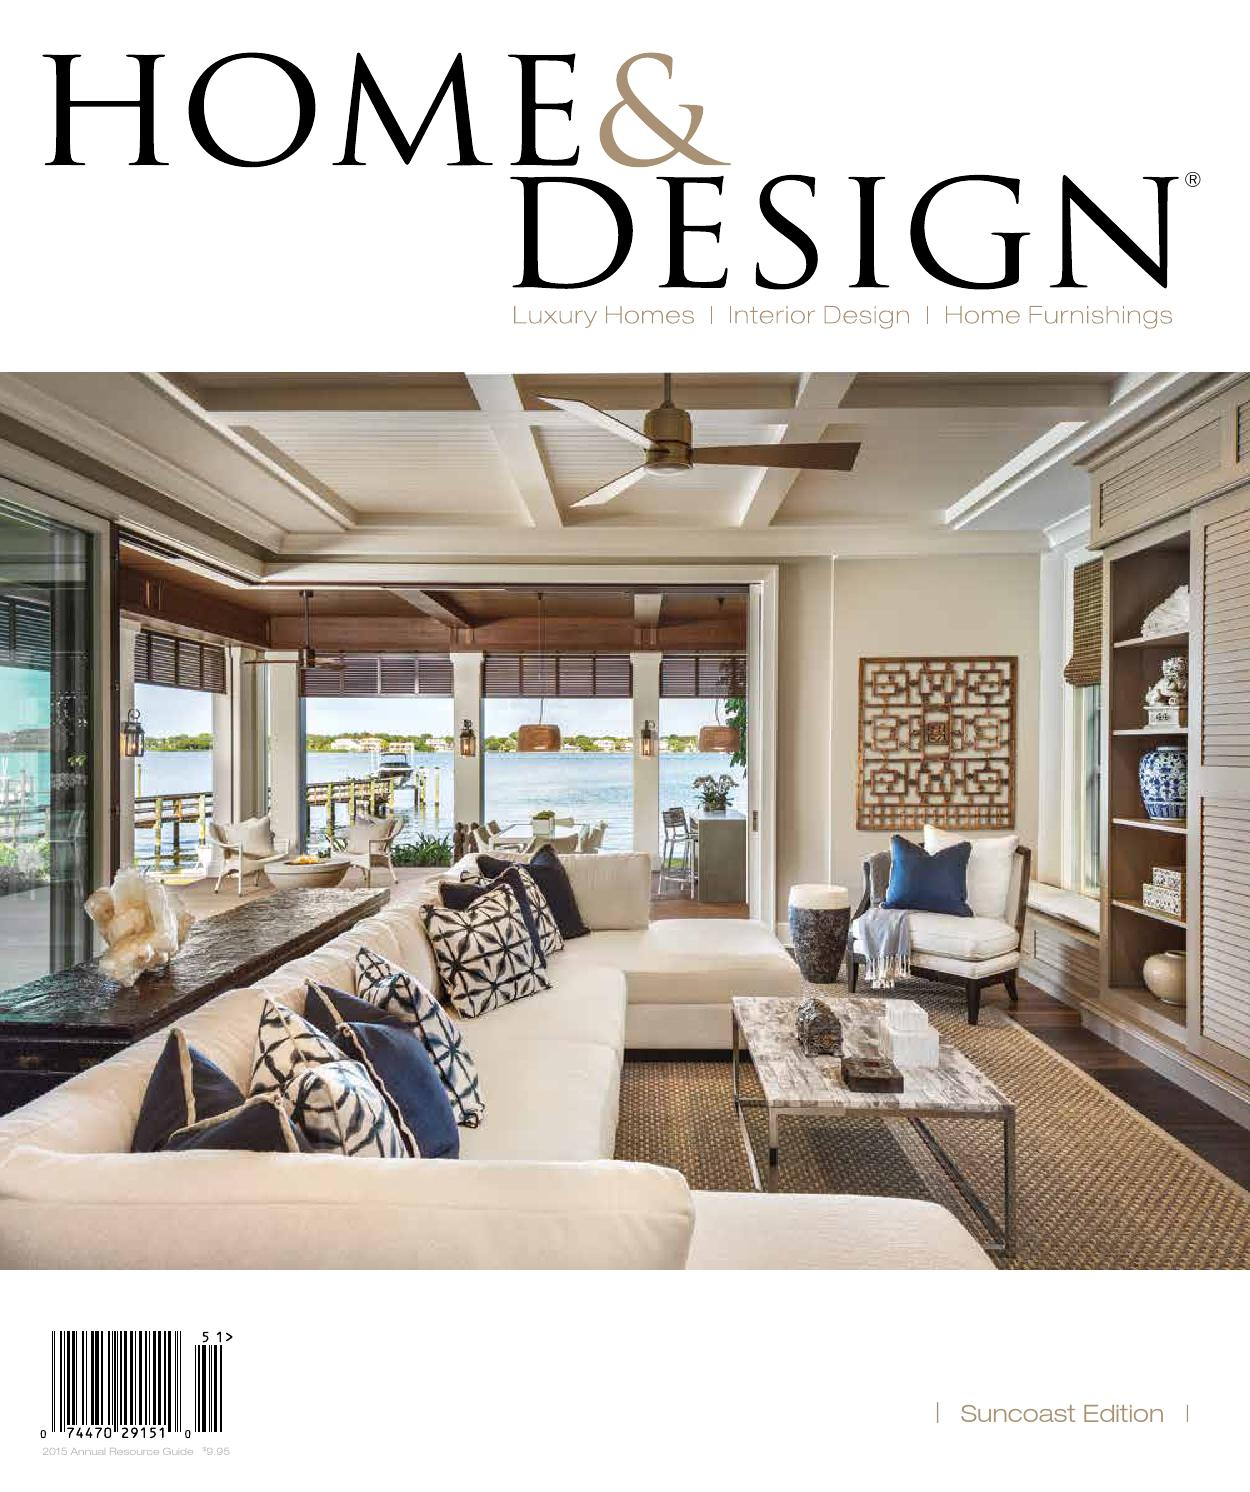 Home design magazine annual resource guide 2015 suncoast florida edition by anthony spano New home furniture bekasi